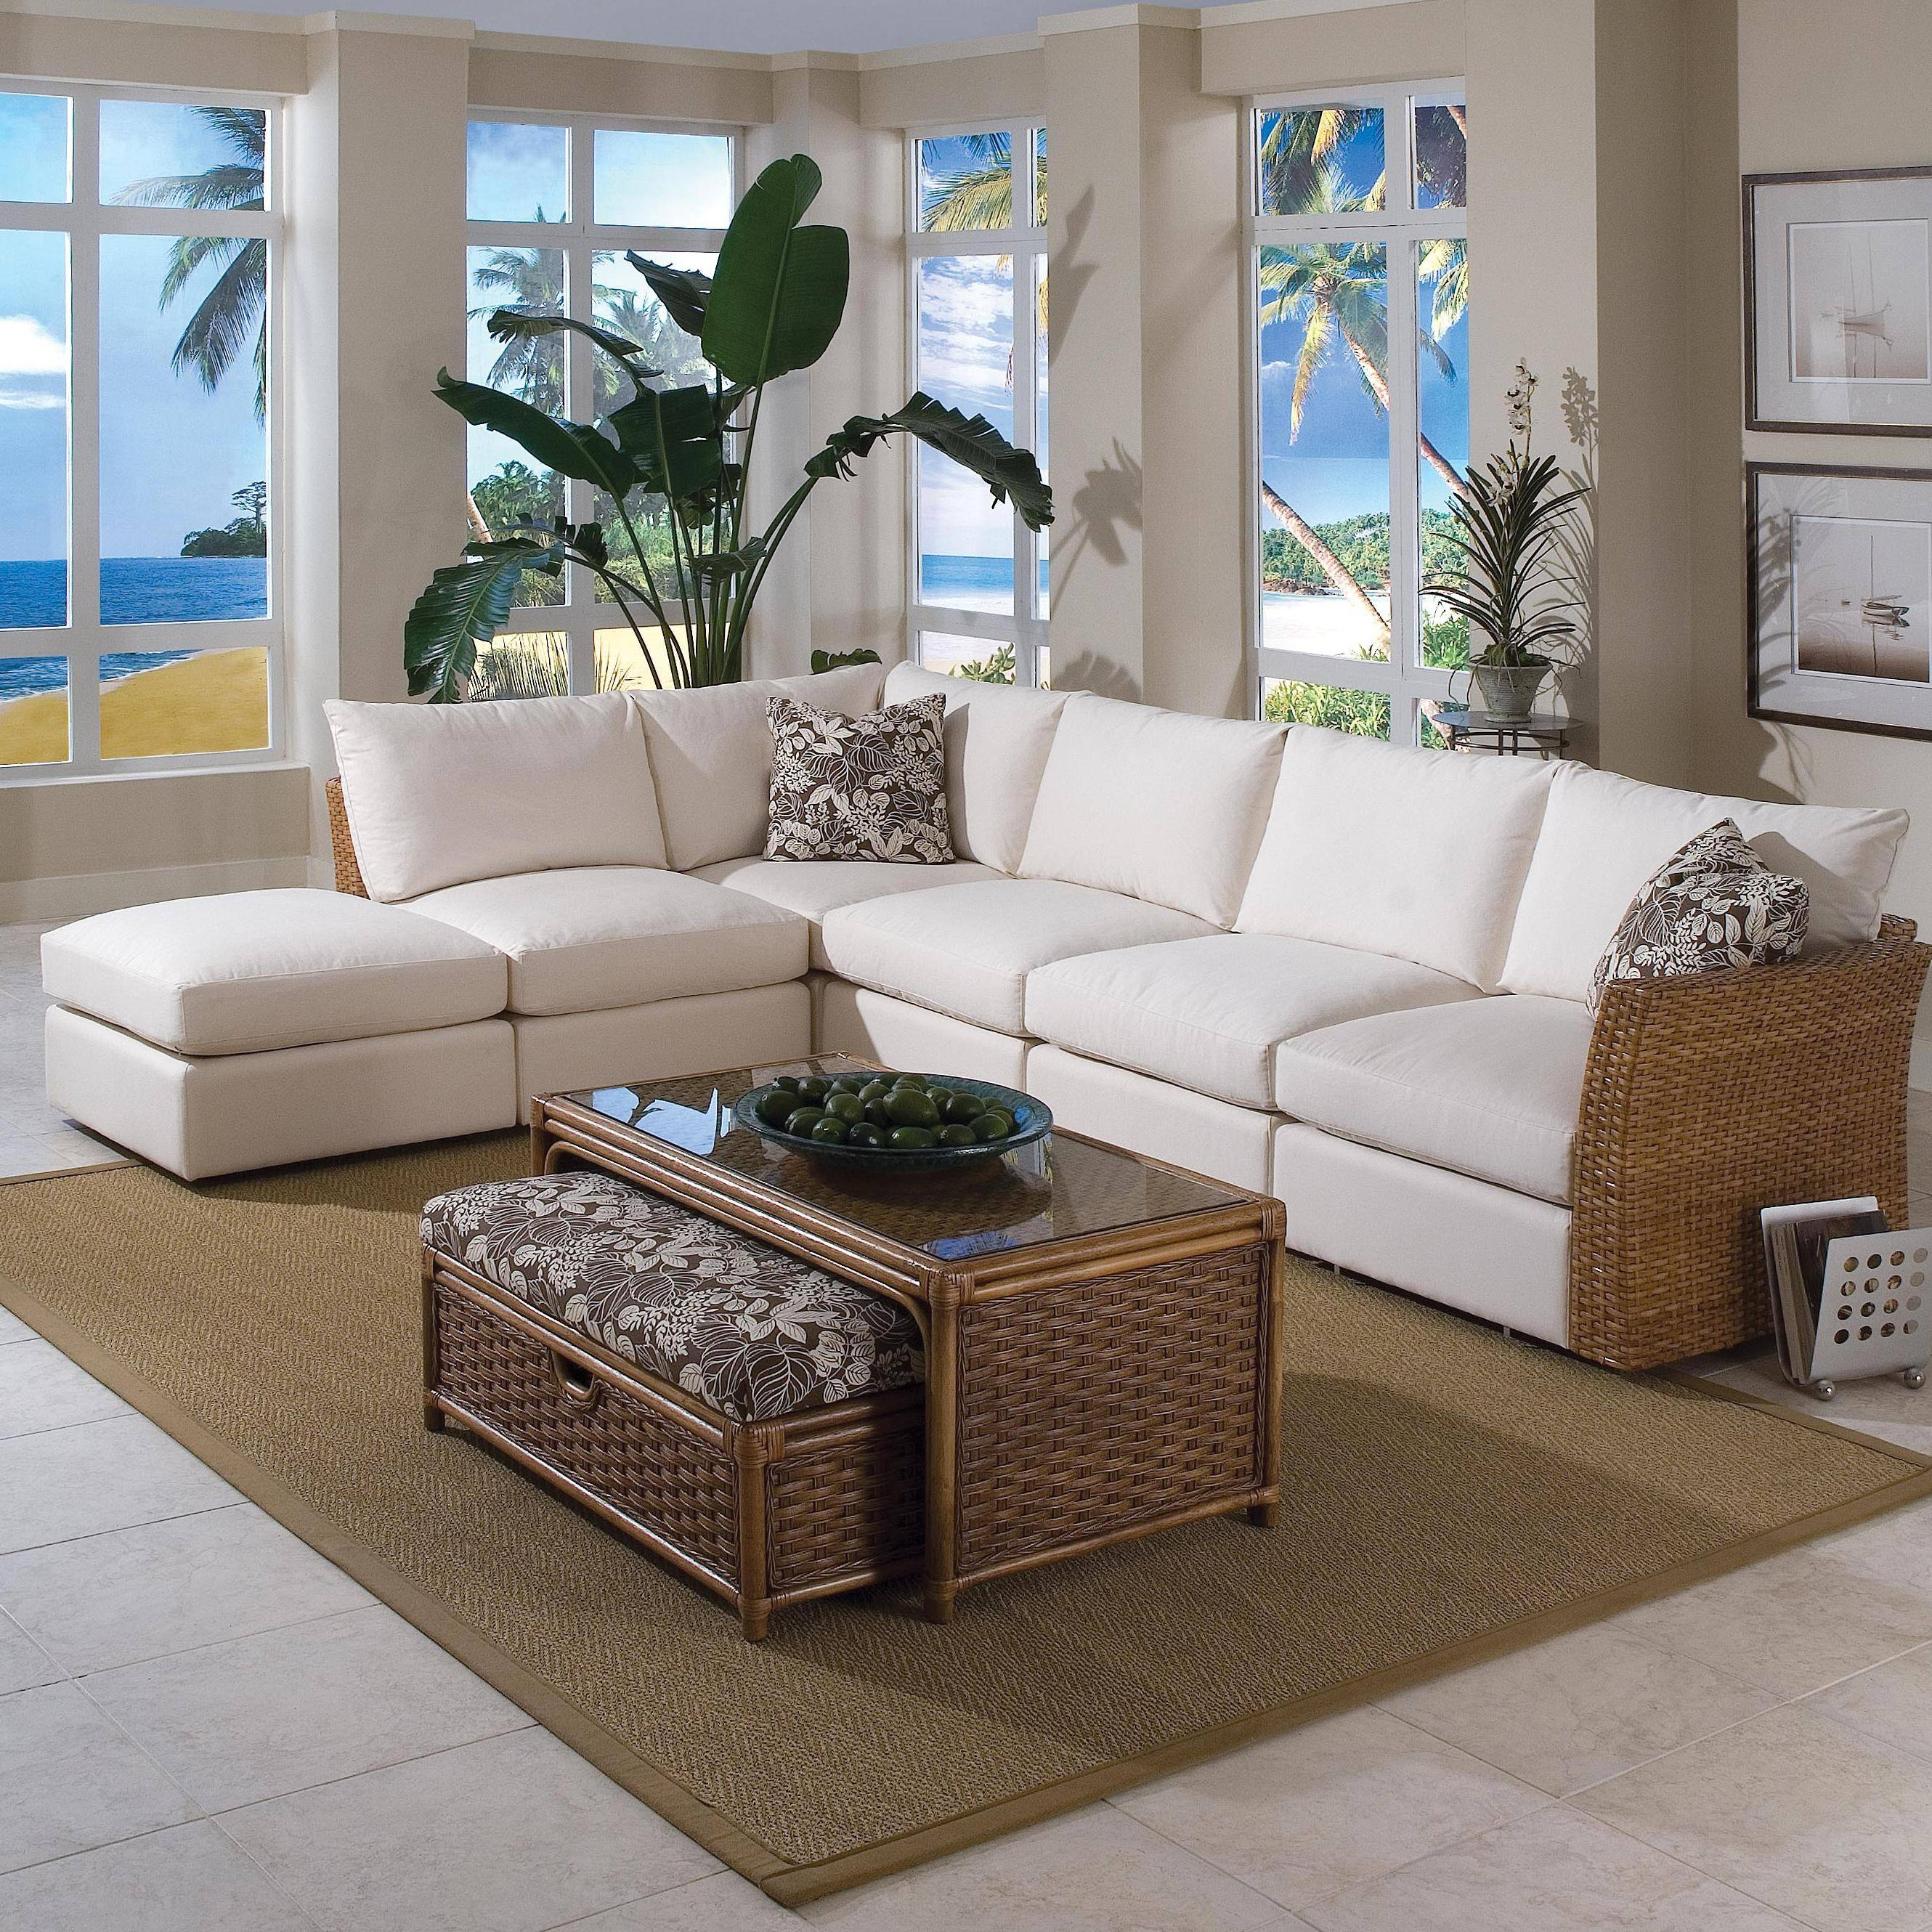 Beautiful Sectional Sofas Havertys 79 About Remodel Eco Friendly within Eco Friendly Sectional Sofa (Image 11 of 30)